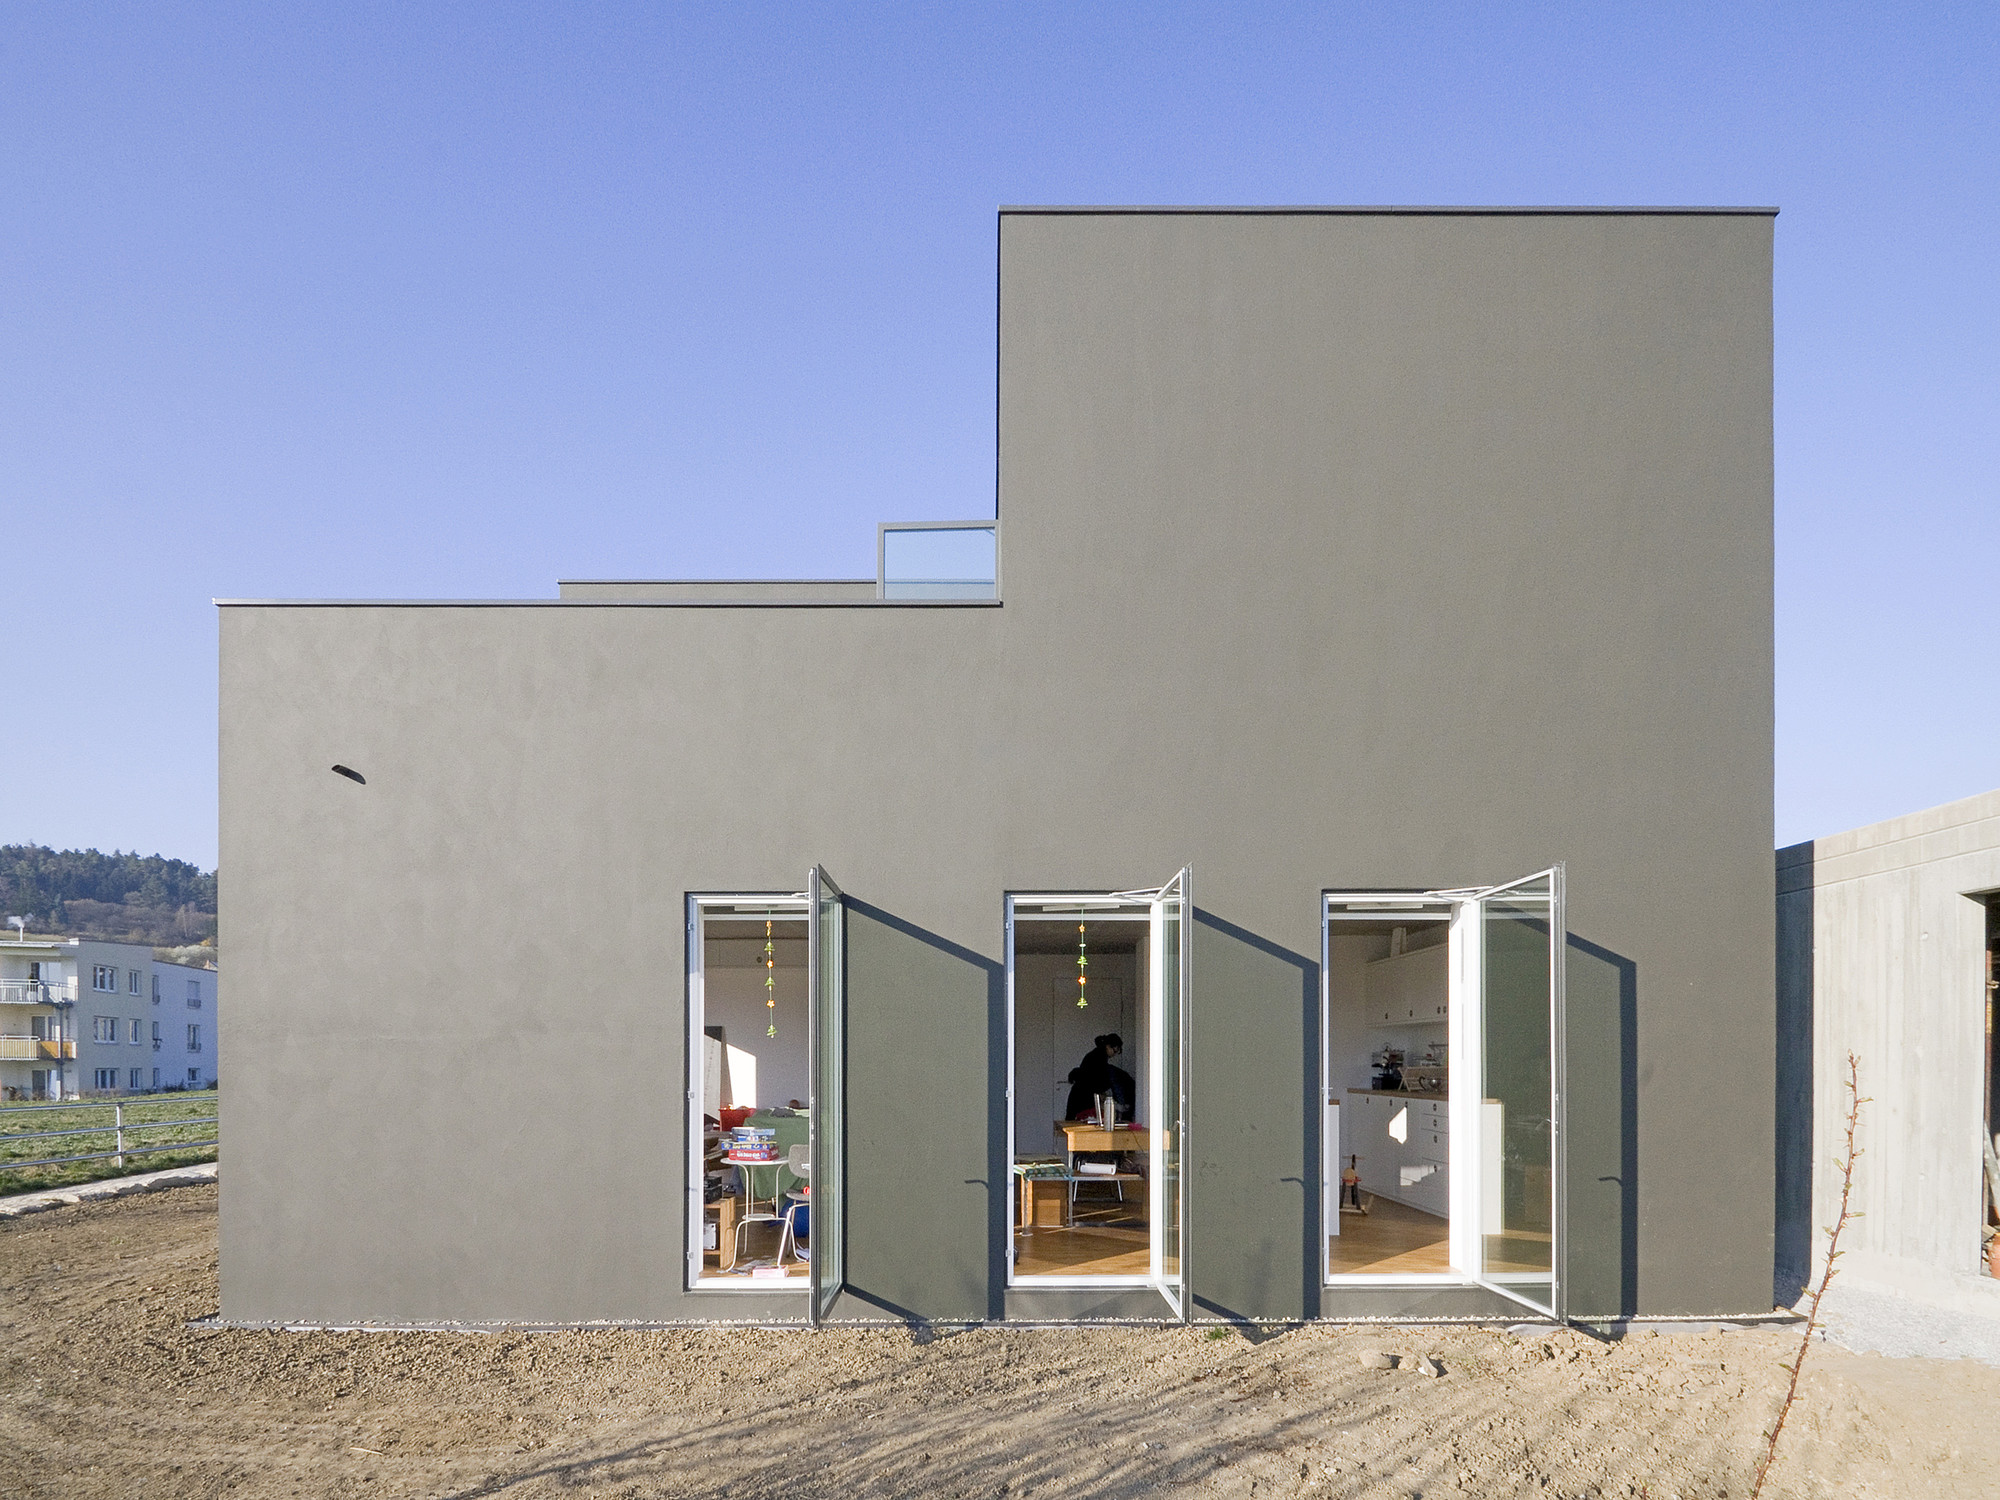 House 9,74 x 9,74 / f m b architekten, Courtesy of f m b architekten